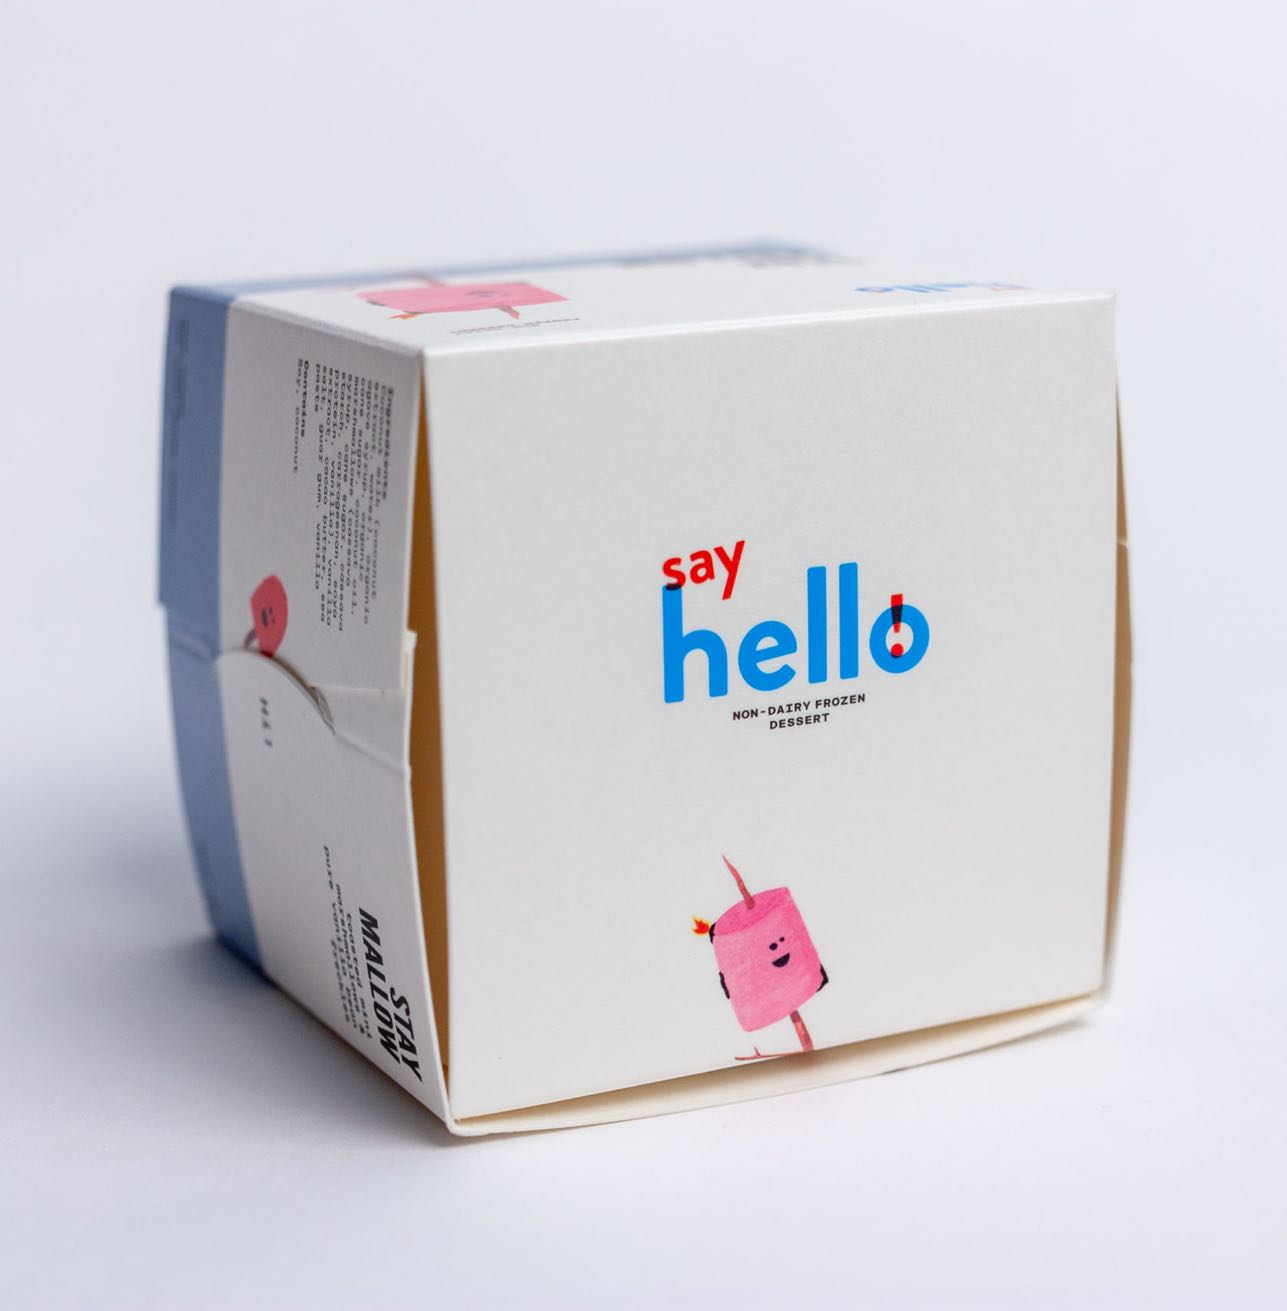 Say Hello Sweets close up of custom structural design of a food safe, glue free ice cream container with Marshmallow illustration by Jessica Fraser — by Yagnyuk.